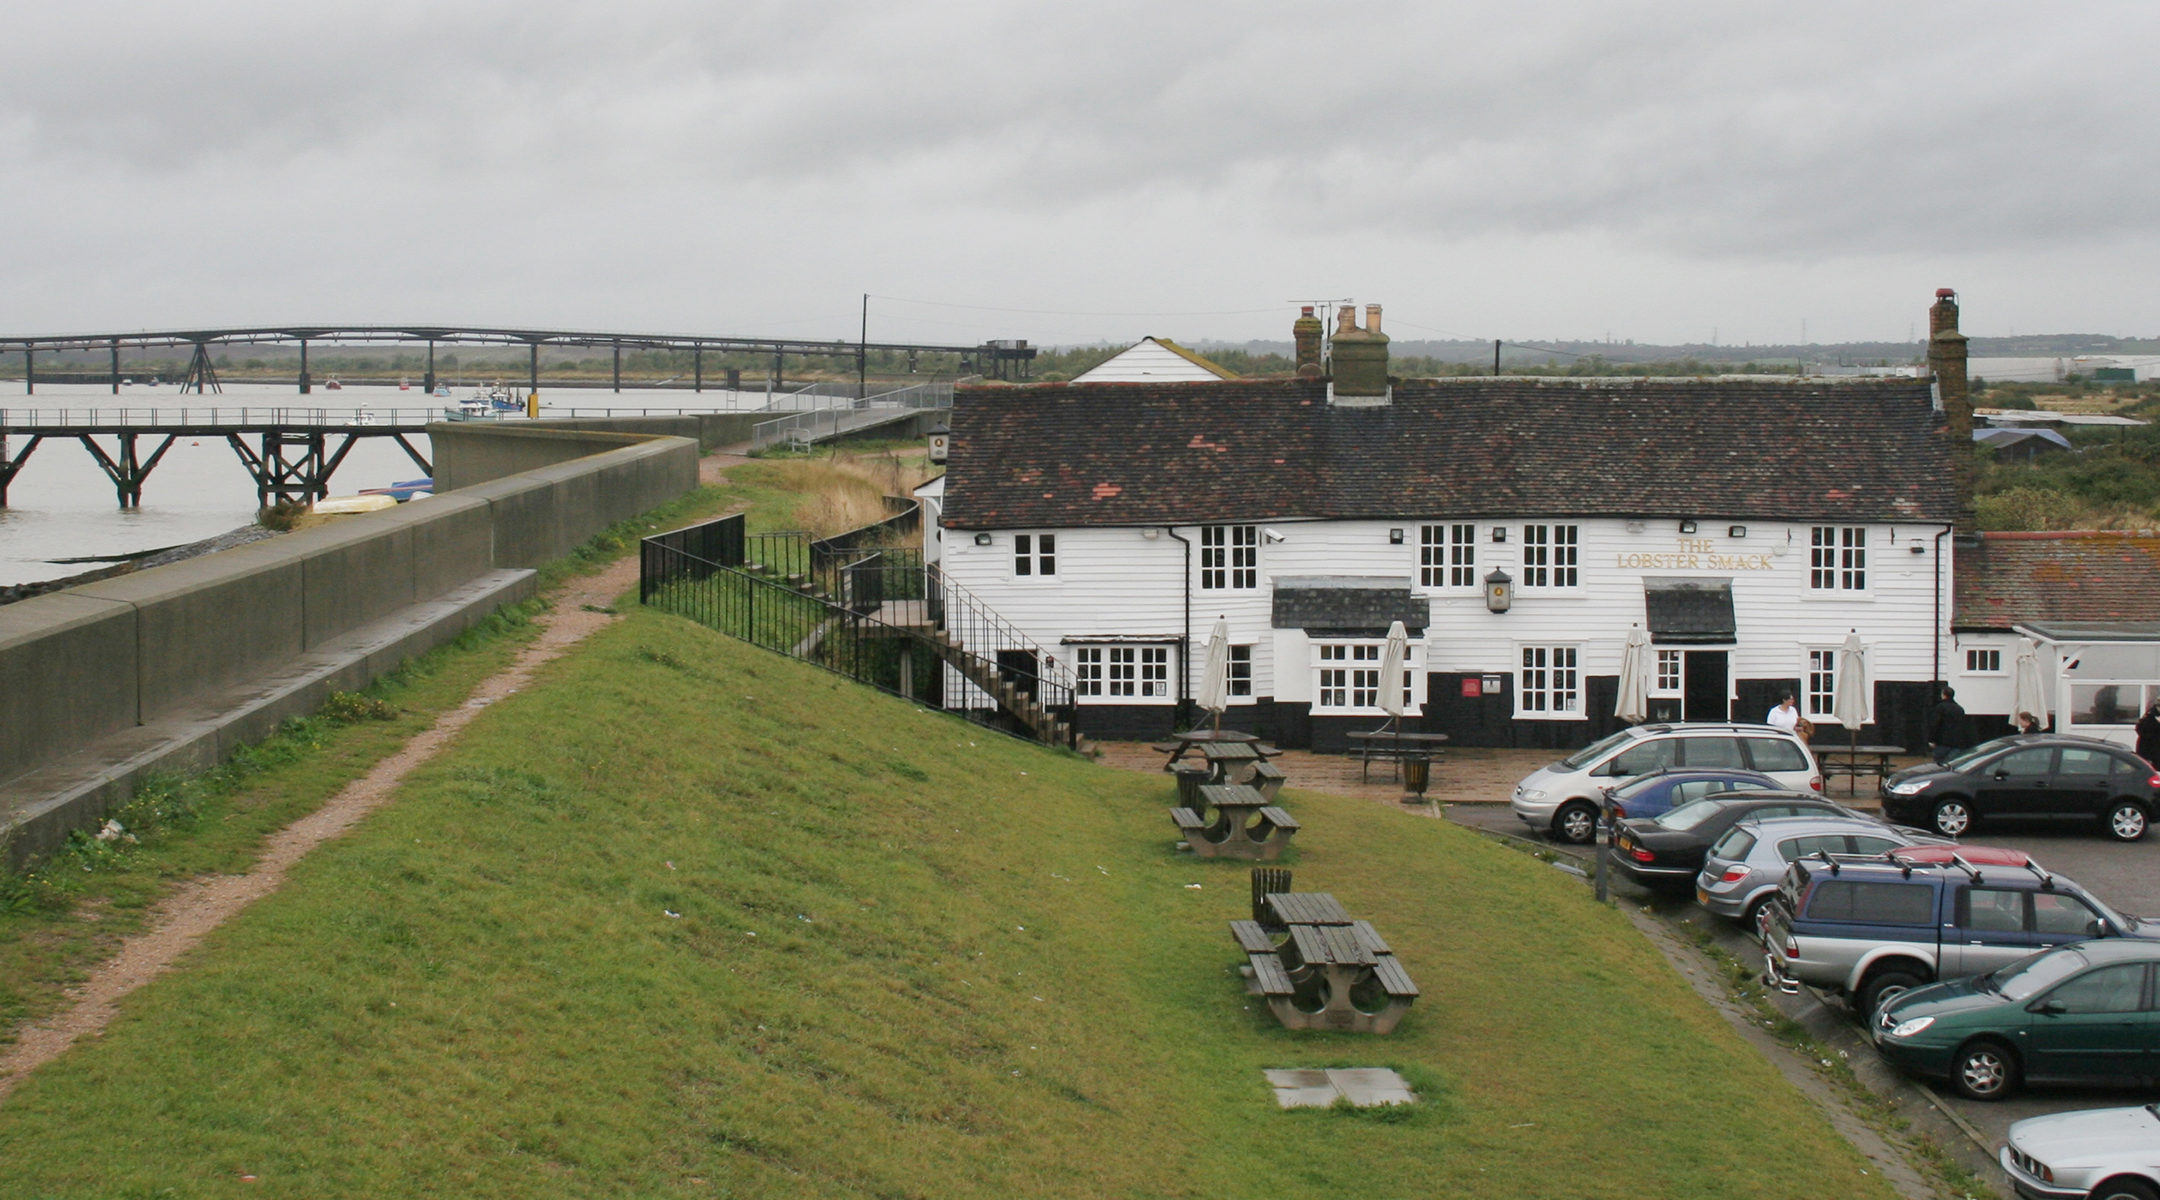 A restaurant in Canvery Island, the United Kingdom (Wikimedia Commons)